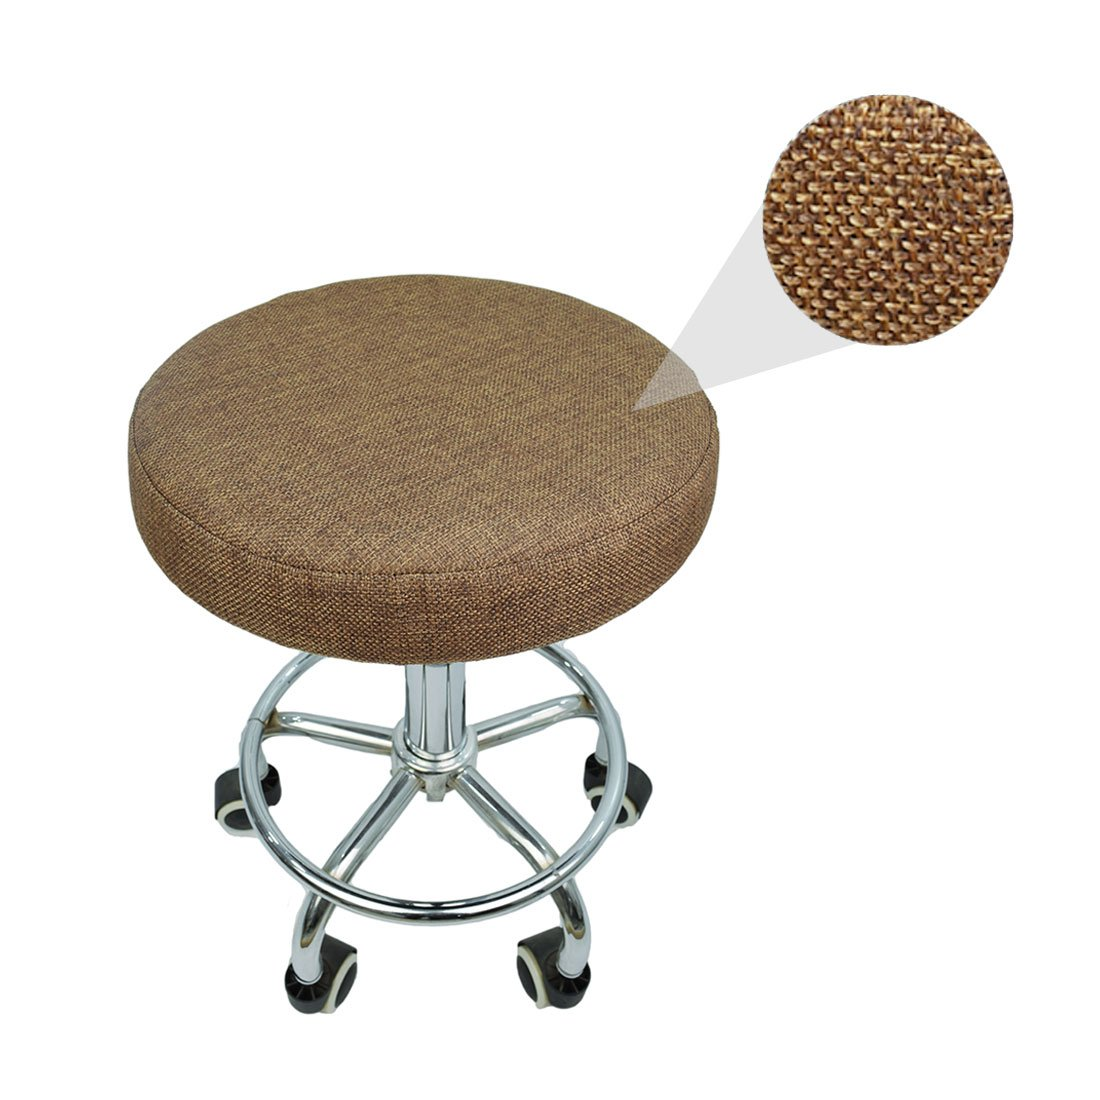 Rosavida 16 Inch Round Stool Cover en Linen with Elastic Anti-slip Round Seat Covers Protectors for Barstool #1